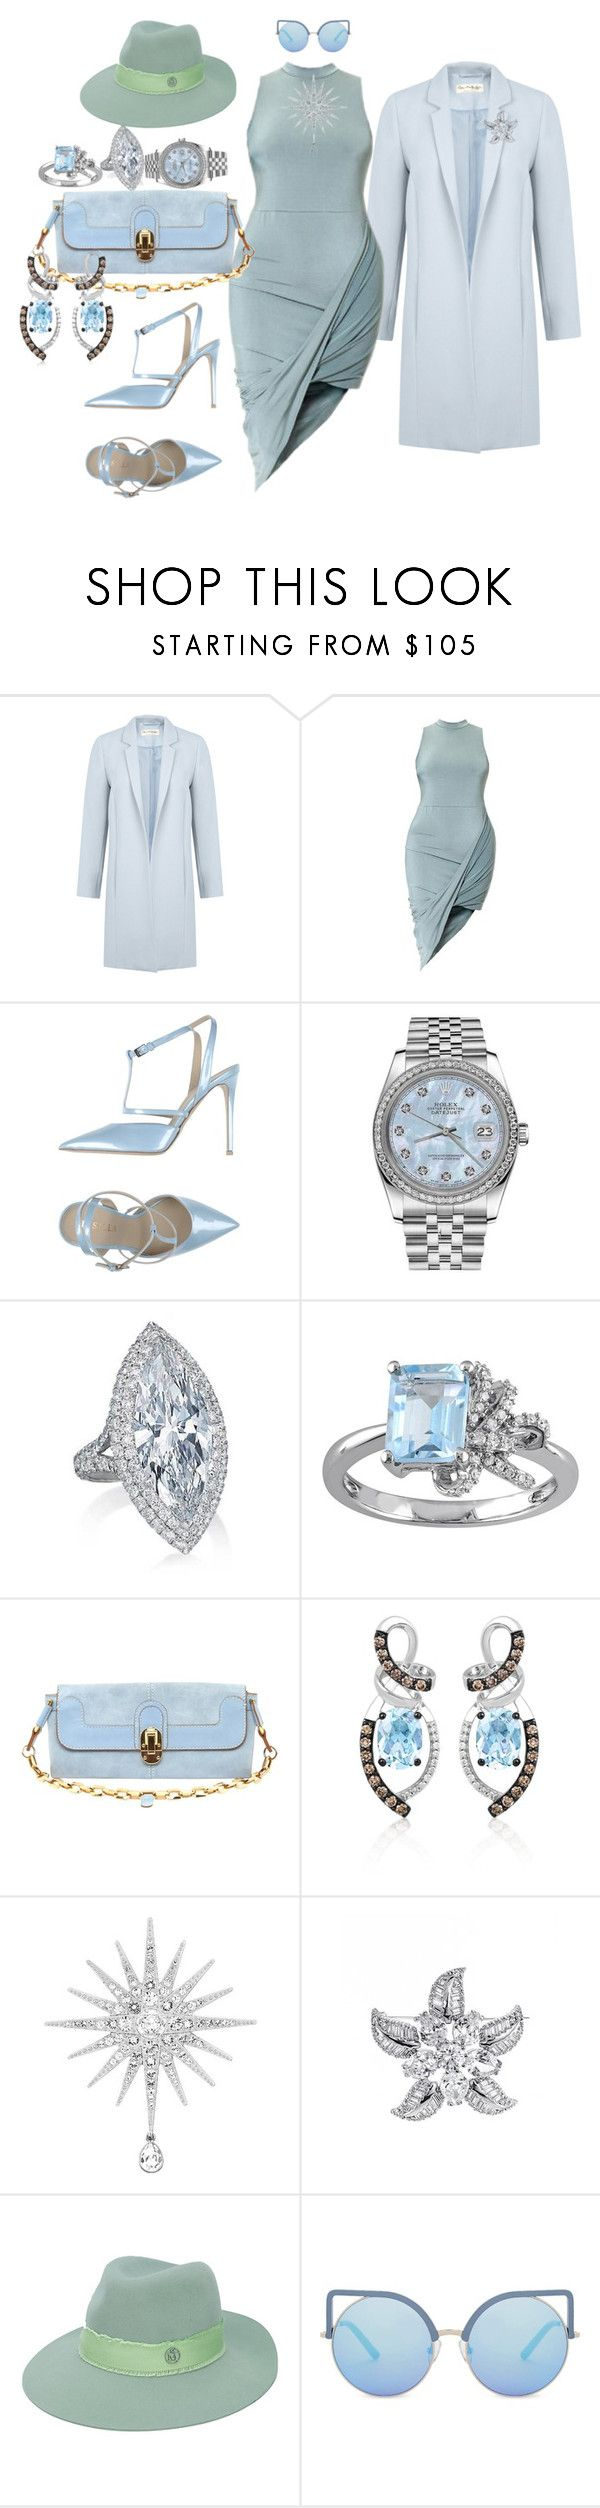 """That Hot Blue Dress - Sexy Big Girls Rock"" by blujay1126 ❤ liked on Polyvore featuring Miss Selfridge, Le Silla, Rolex, Laura Ashley, Chloé, LE VIAN, Swarovski, CZ by Kenneth Jay Lane, Maison Michel and Matthew Williamson"